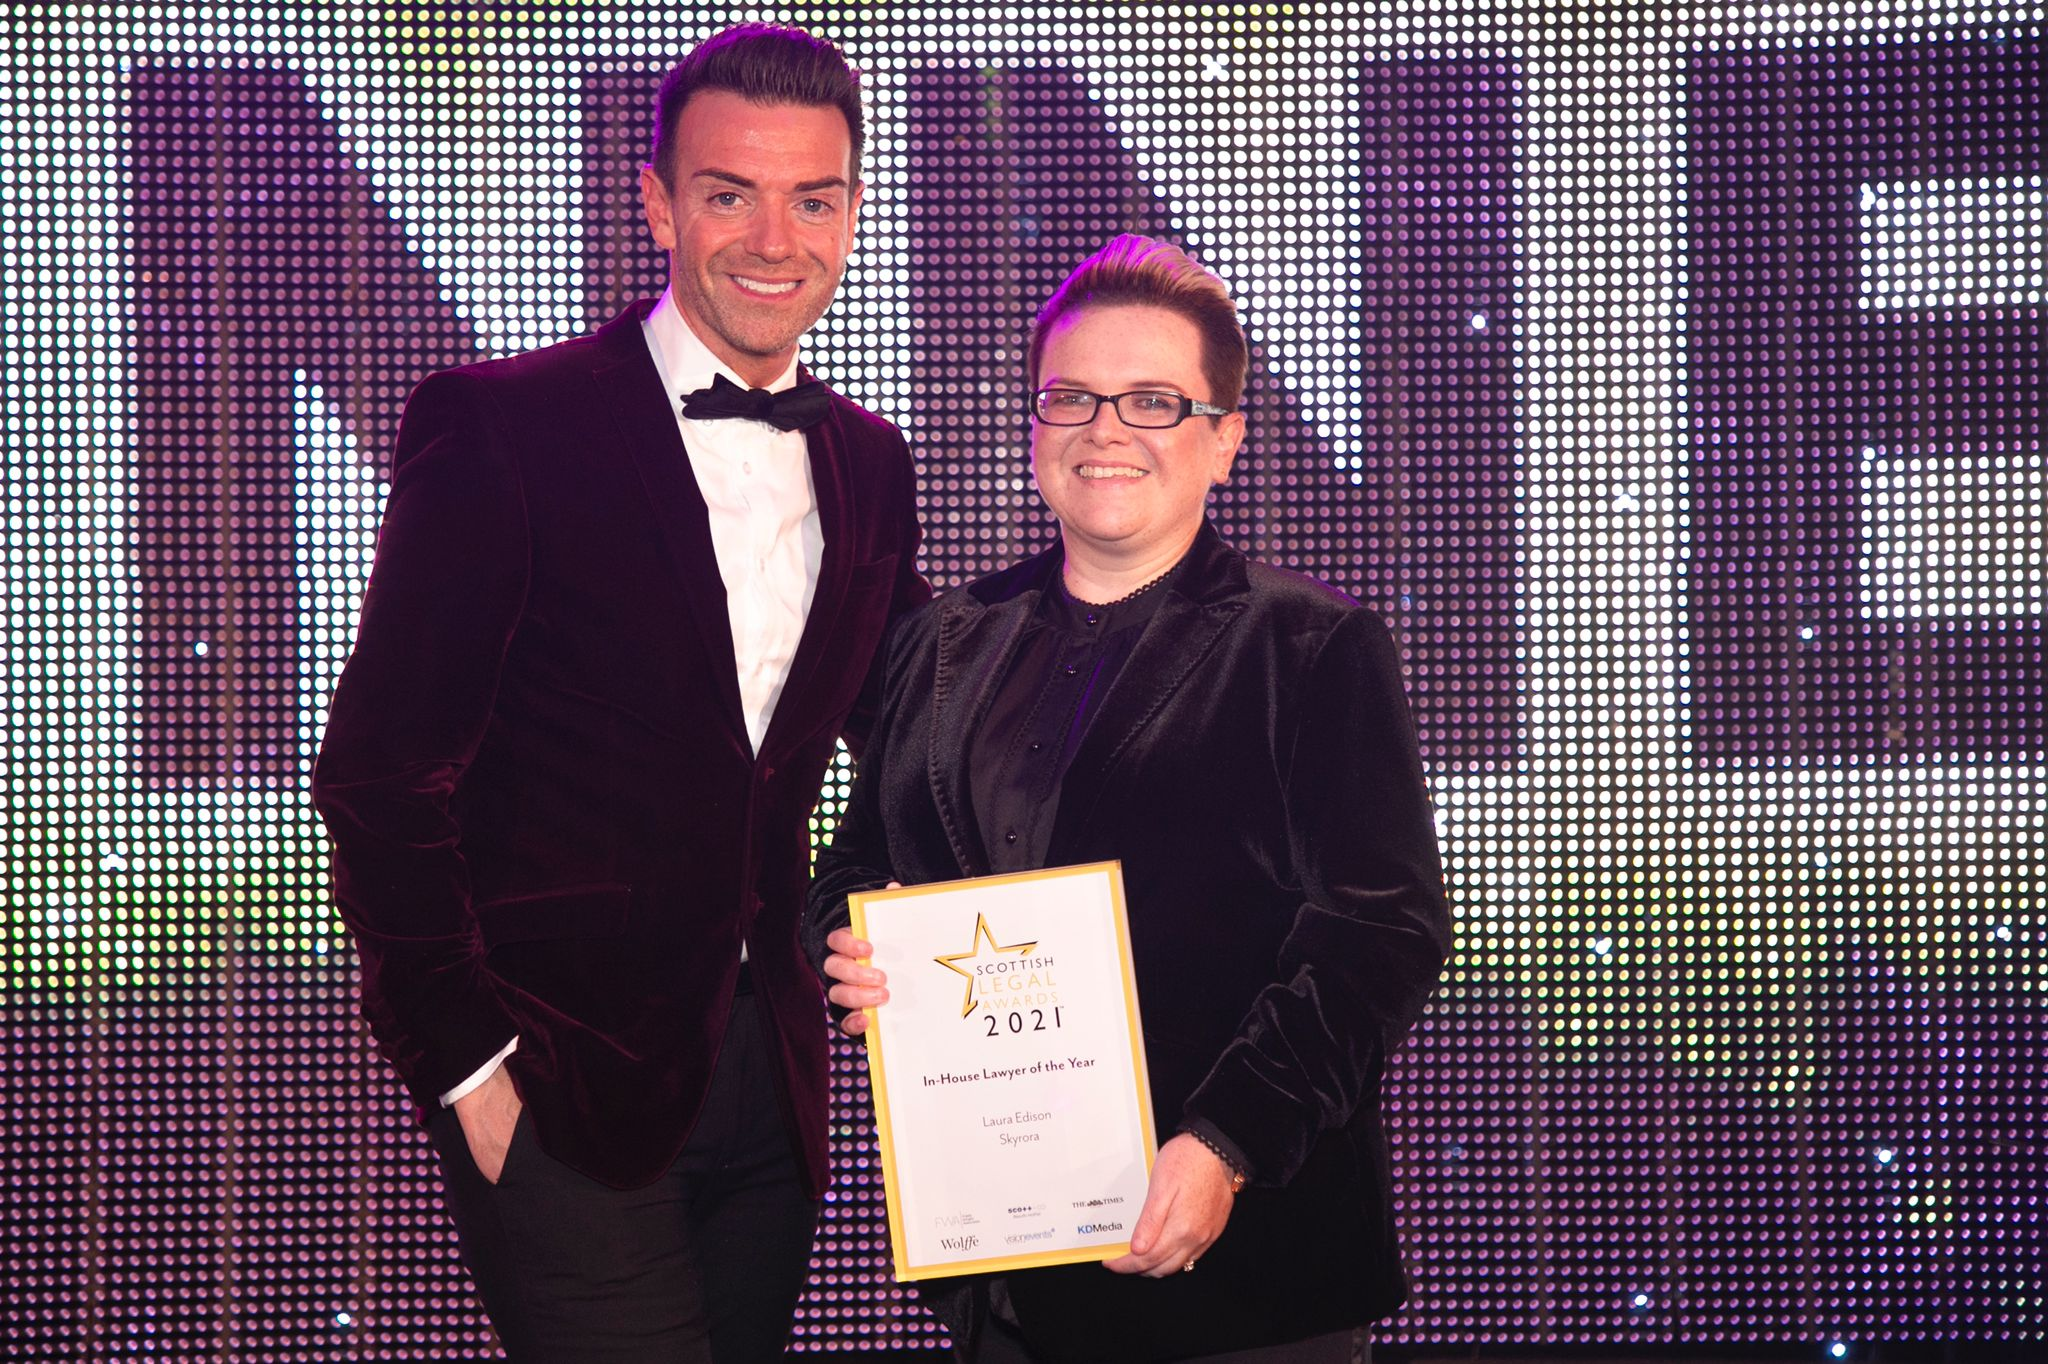 18th Annual Scottish Legal Awards Celebrates Laura Edison of Skyrora, Among Others